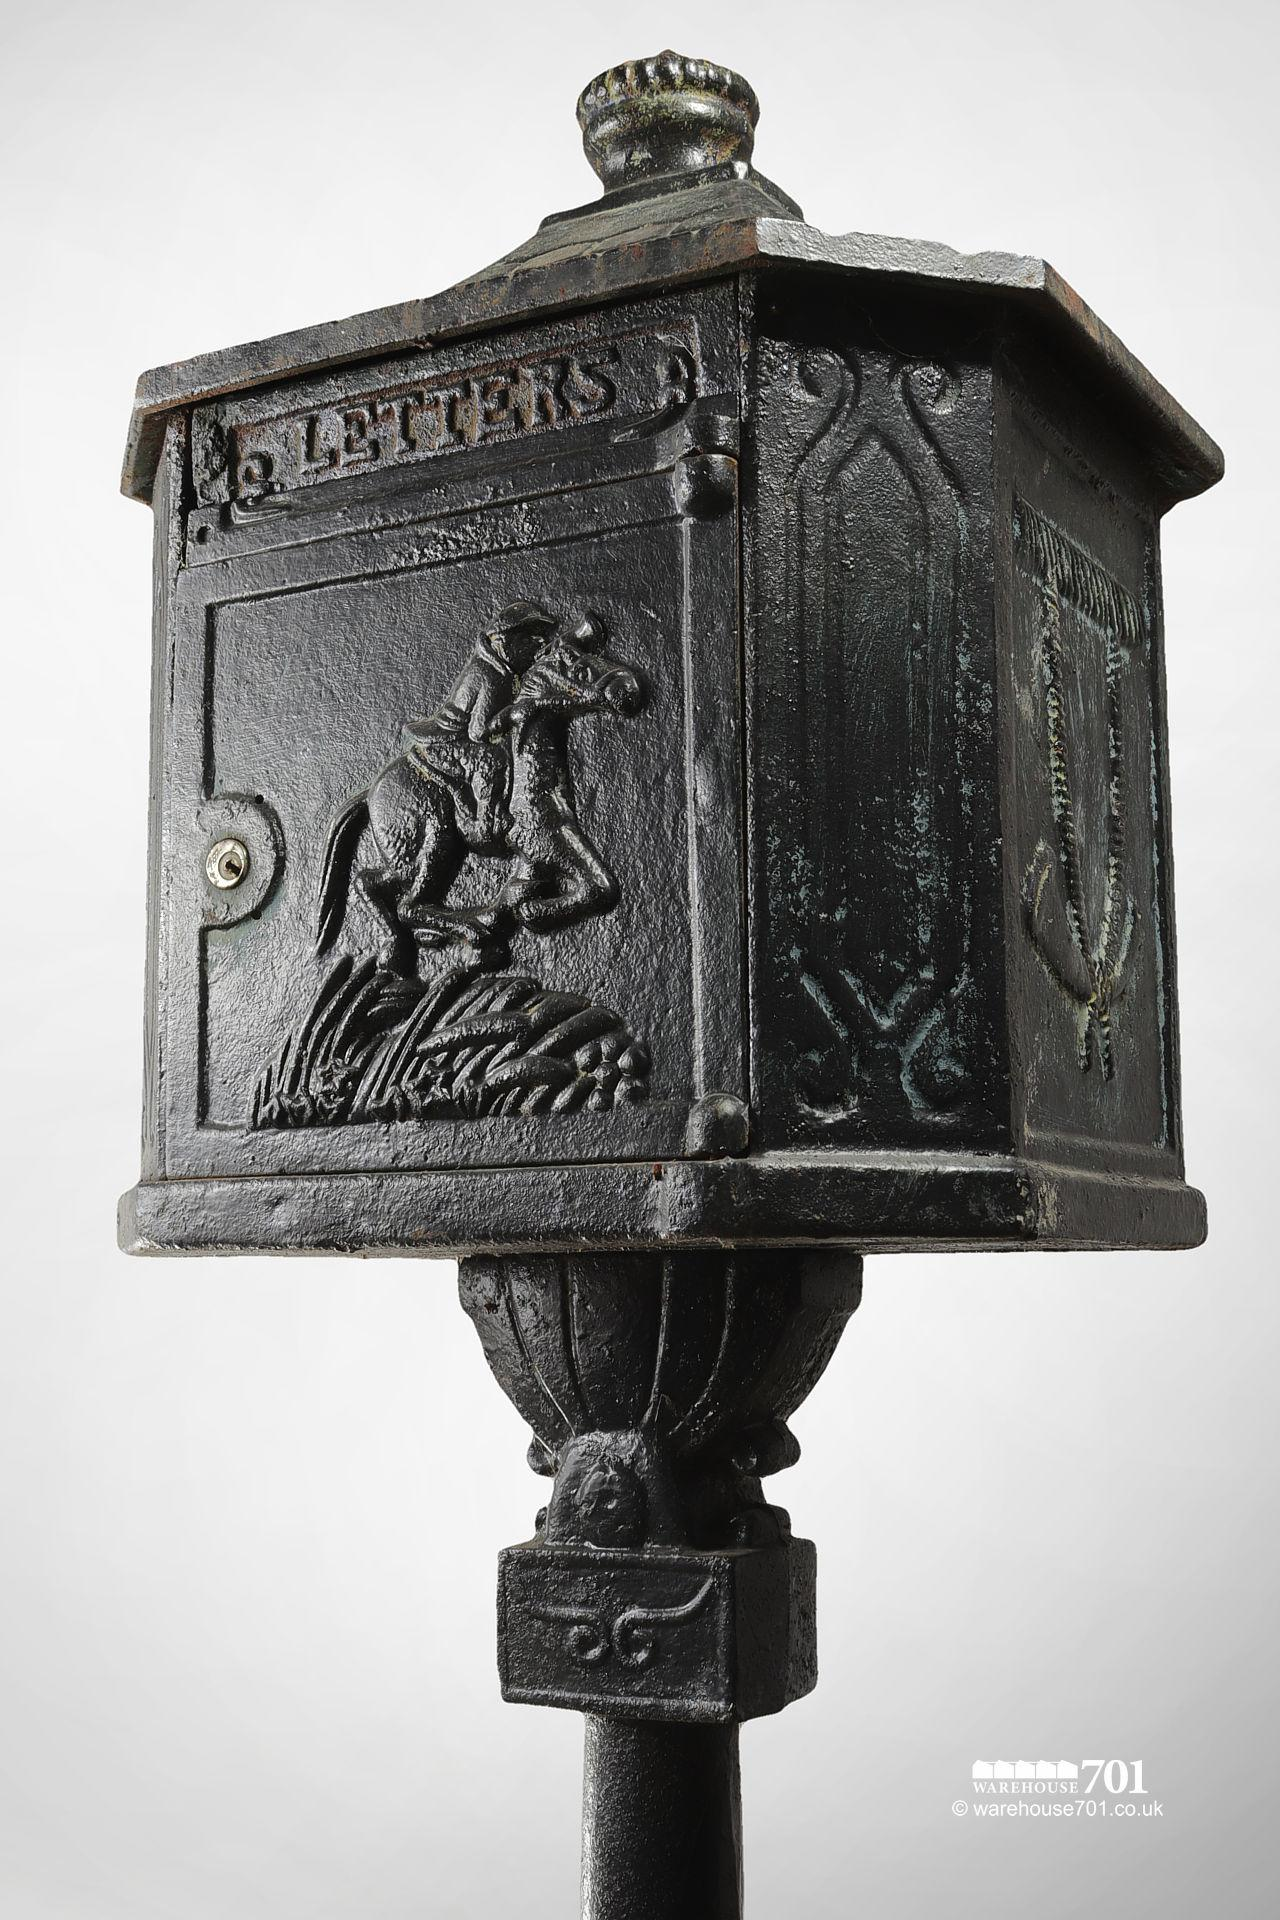 Salvaged Cast Iron Letterbox or Post Box on a Plinth